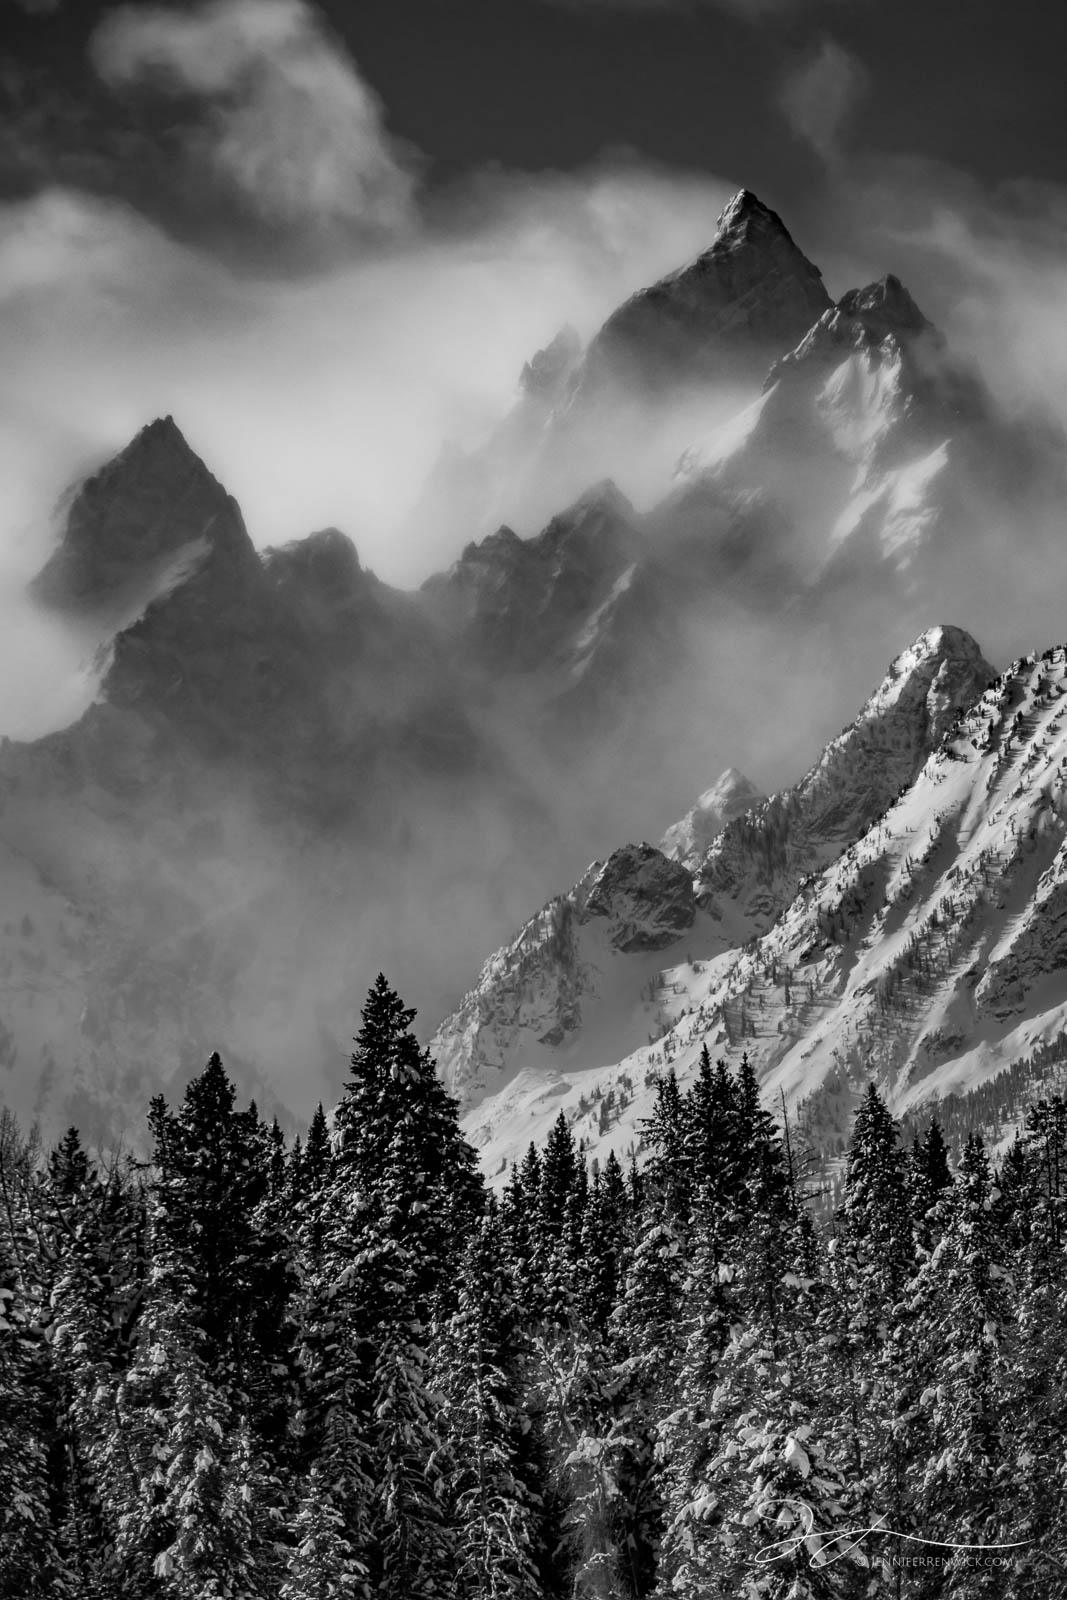 Winter winds and snow swirl around in the mountains making up the Teton Range.